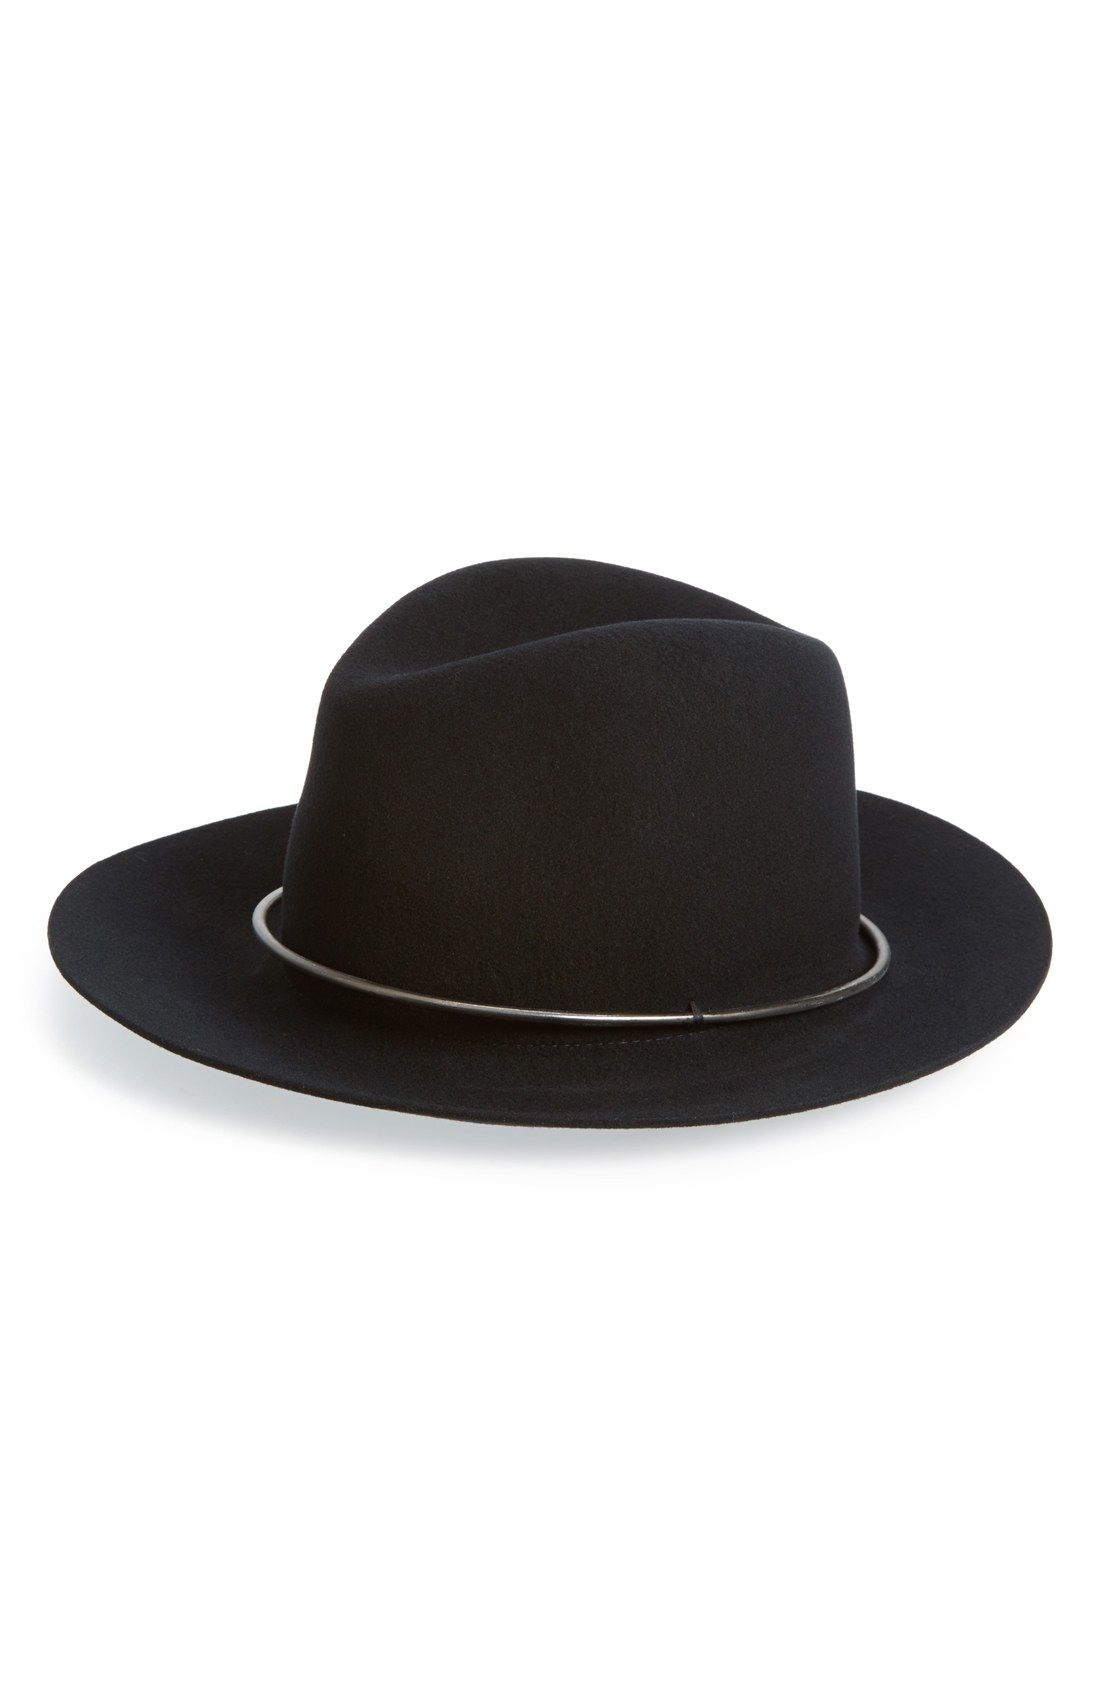 Janessa Leone 'Onyx' Metal Band Wool Hat available at #Nordstrom